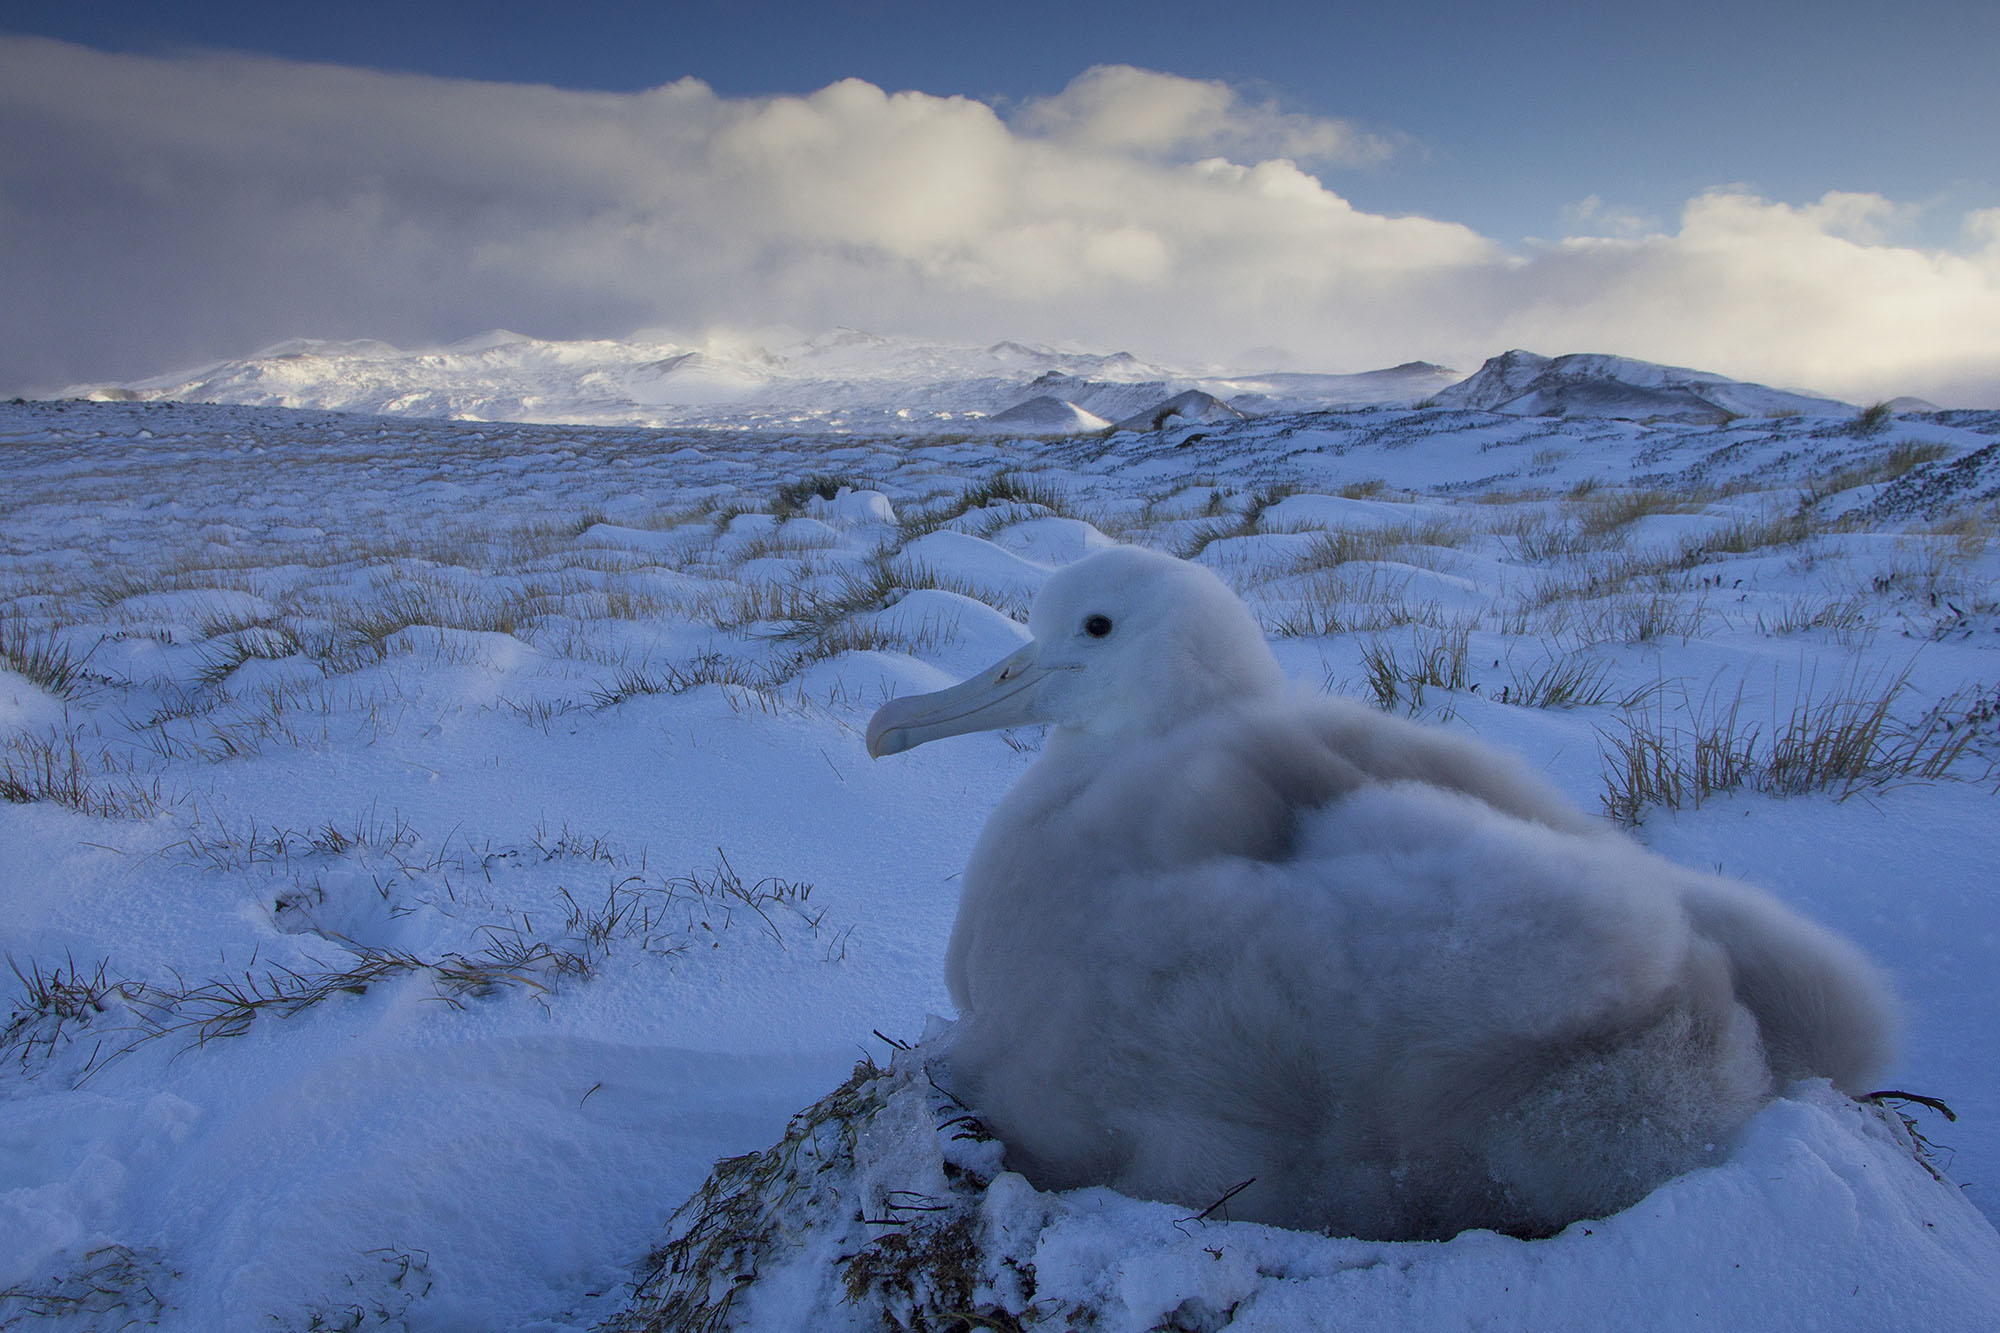 The fluffy winter coat of a wandering albatross chick helps it survive the harsh winters on Marion Island (Otto Whitehead)